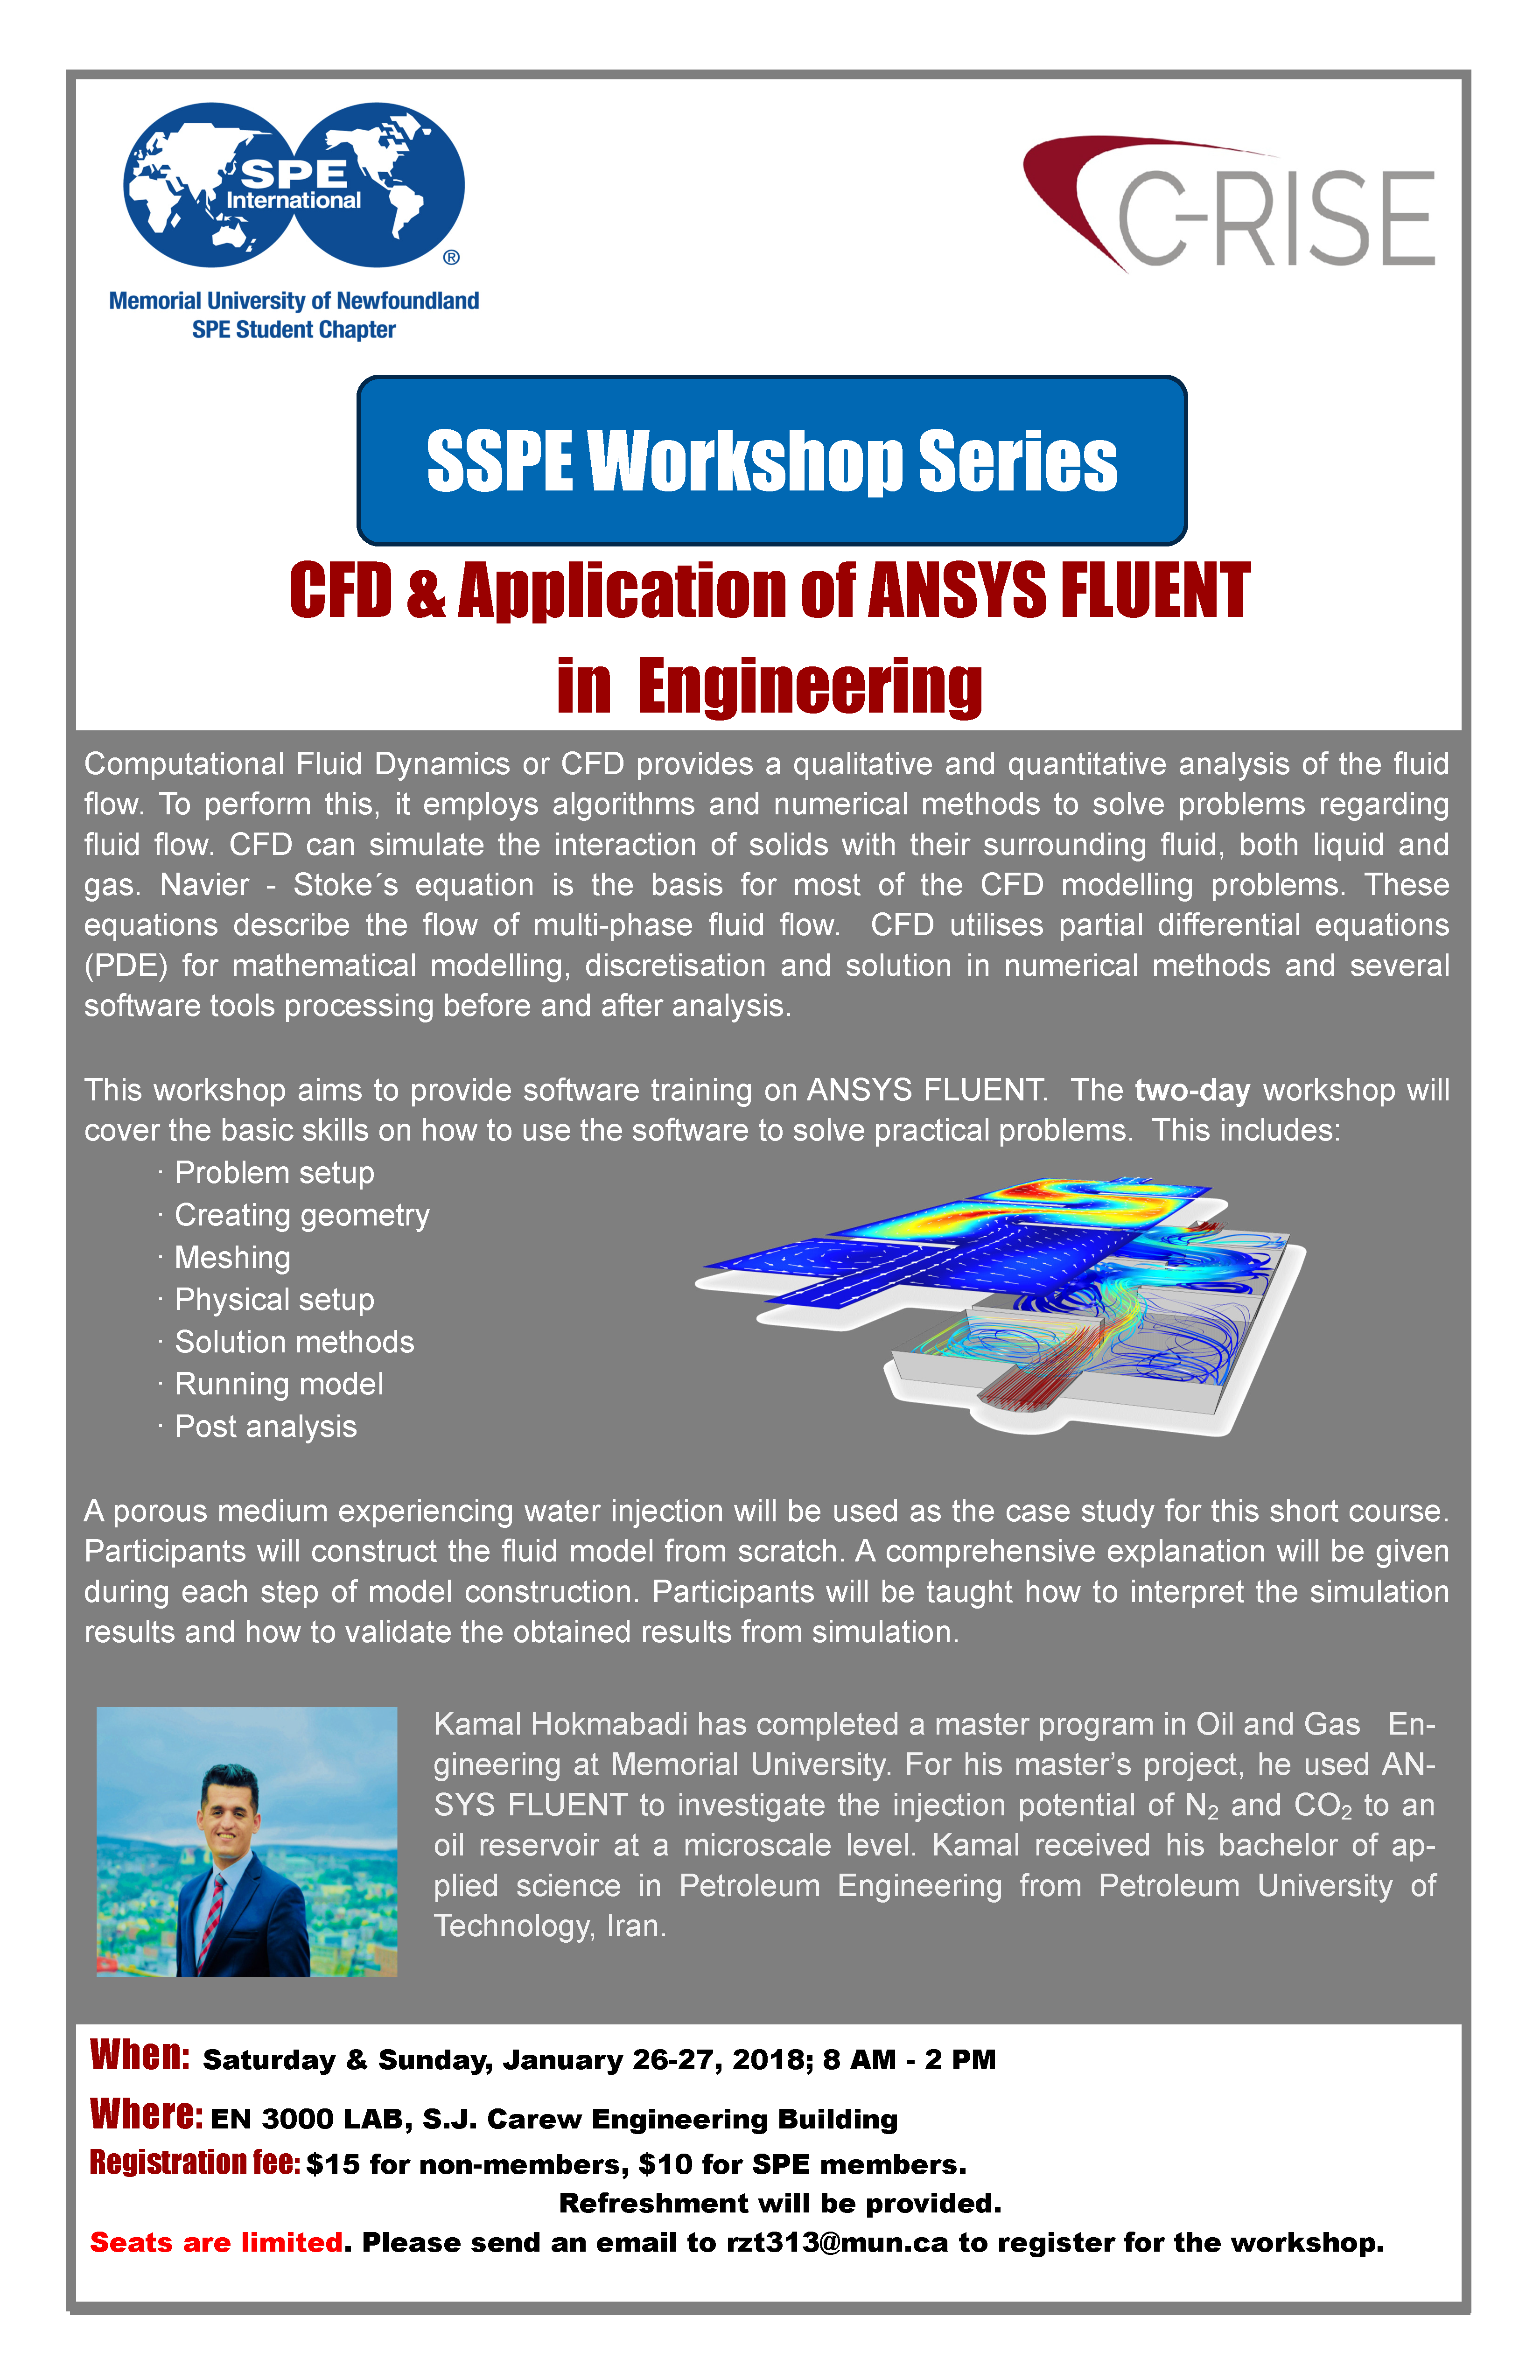 CFD & Application of ANSYS Fluent in Engineering | Student Society